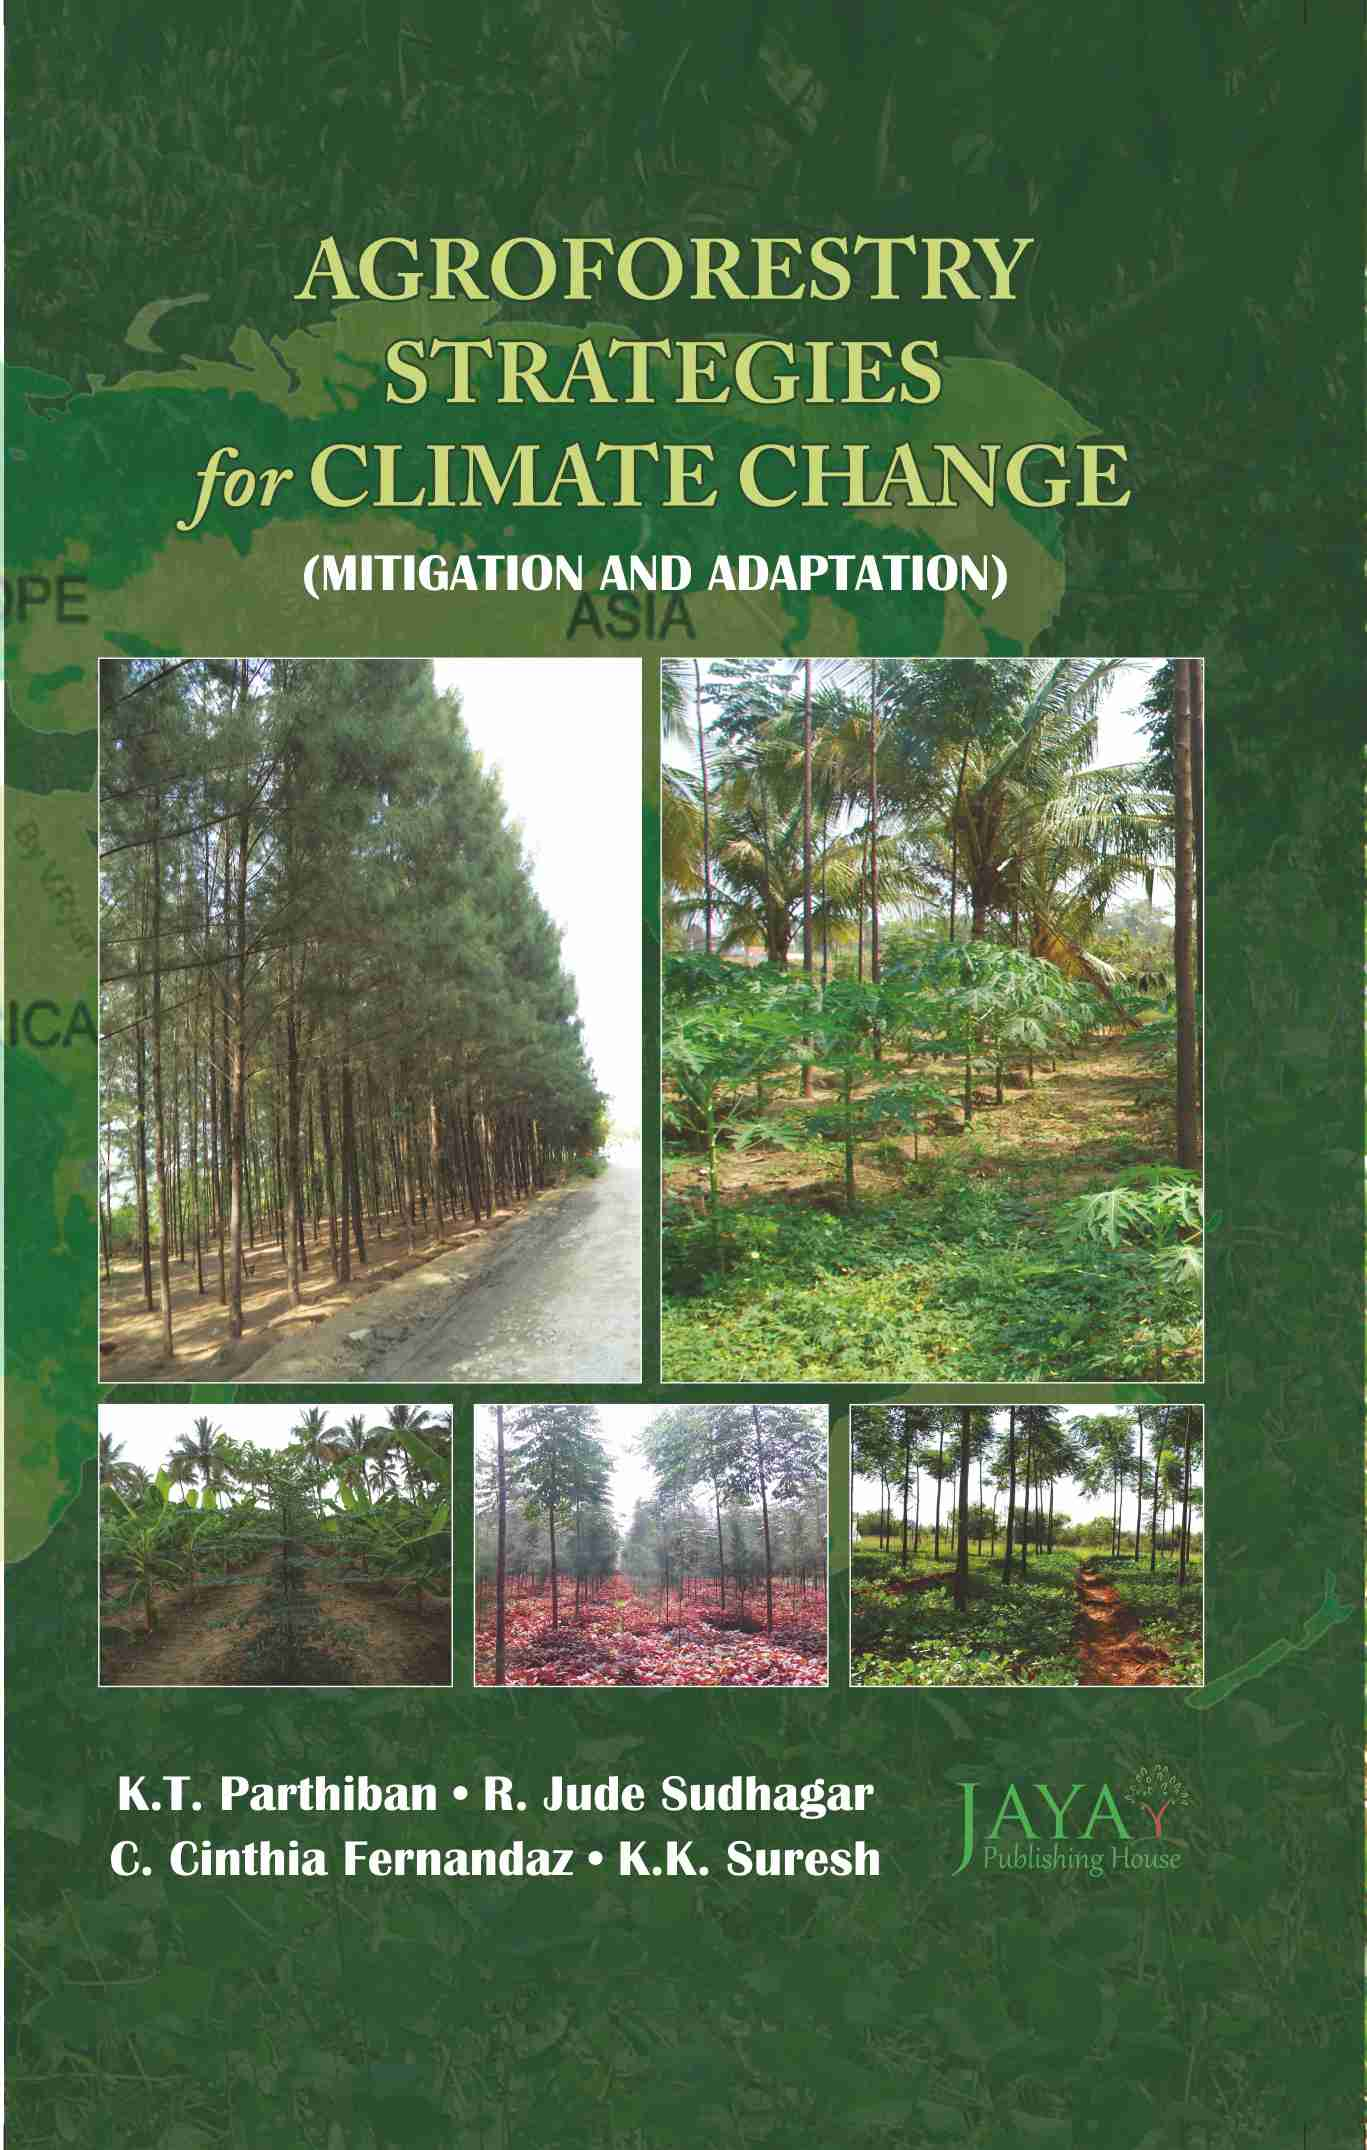 Agroforestry Strategy for Climate Change